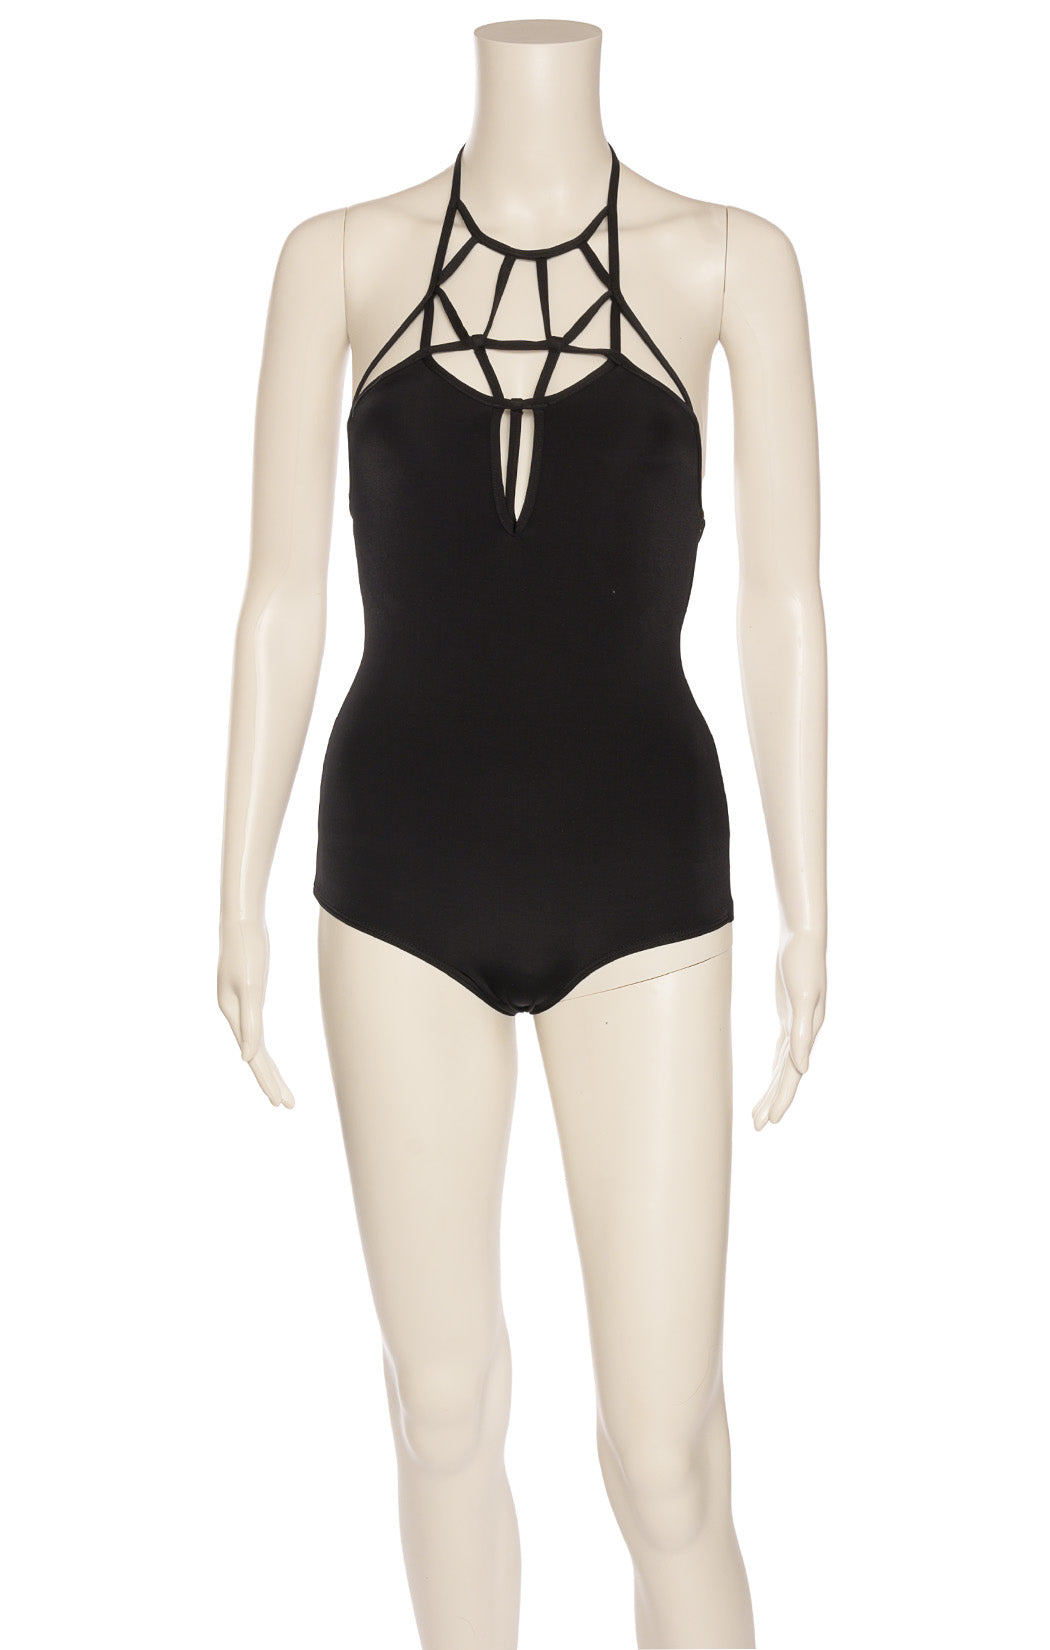 Black one piece bathing suit with front top strap design